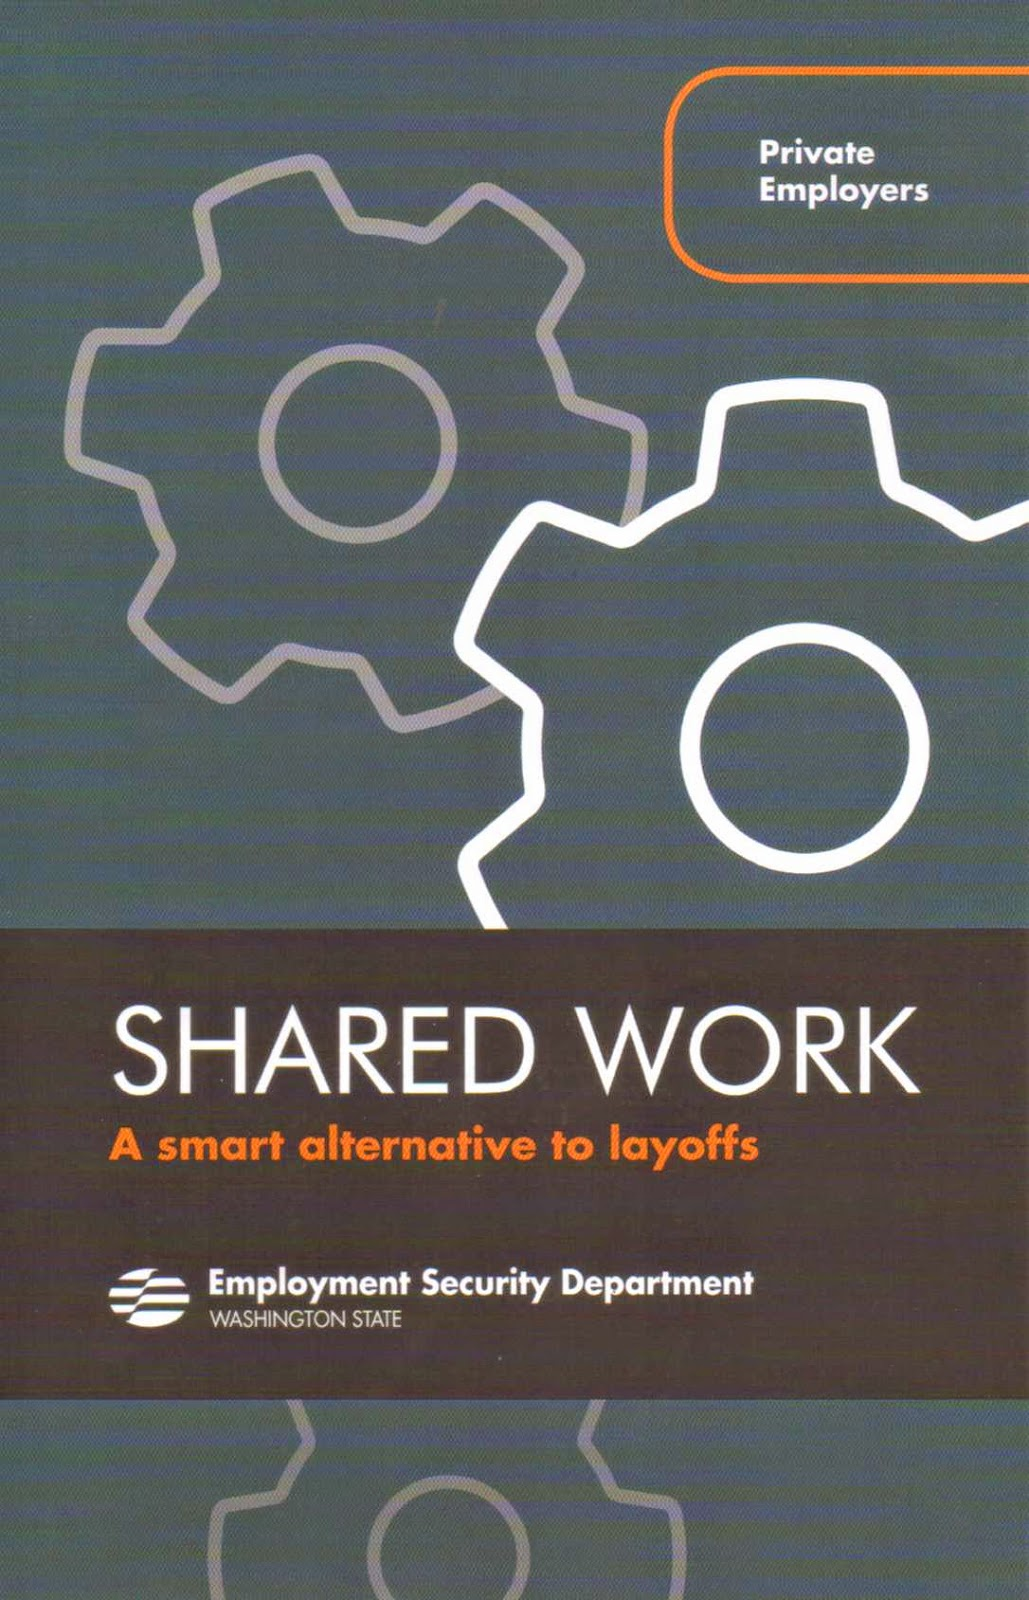 firac rodman v new mexico employment security department 764 p 2d 1316 n m 1988 New mexico employment security department, 101 nm 770, 772, 689 p2d 286, 288 (1984), we recognized that termination for an isolated incident which does not significantly affect[ ] the employer's business may not form the basis for denial of benefits on the grounds of misconduct.